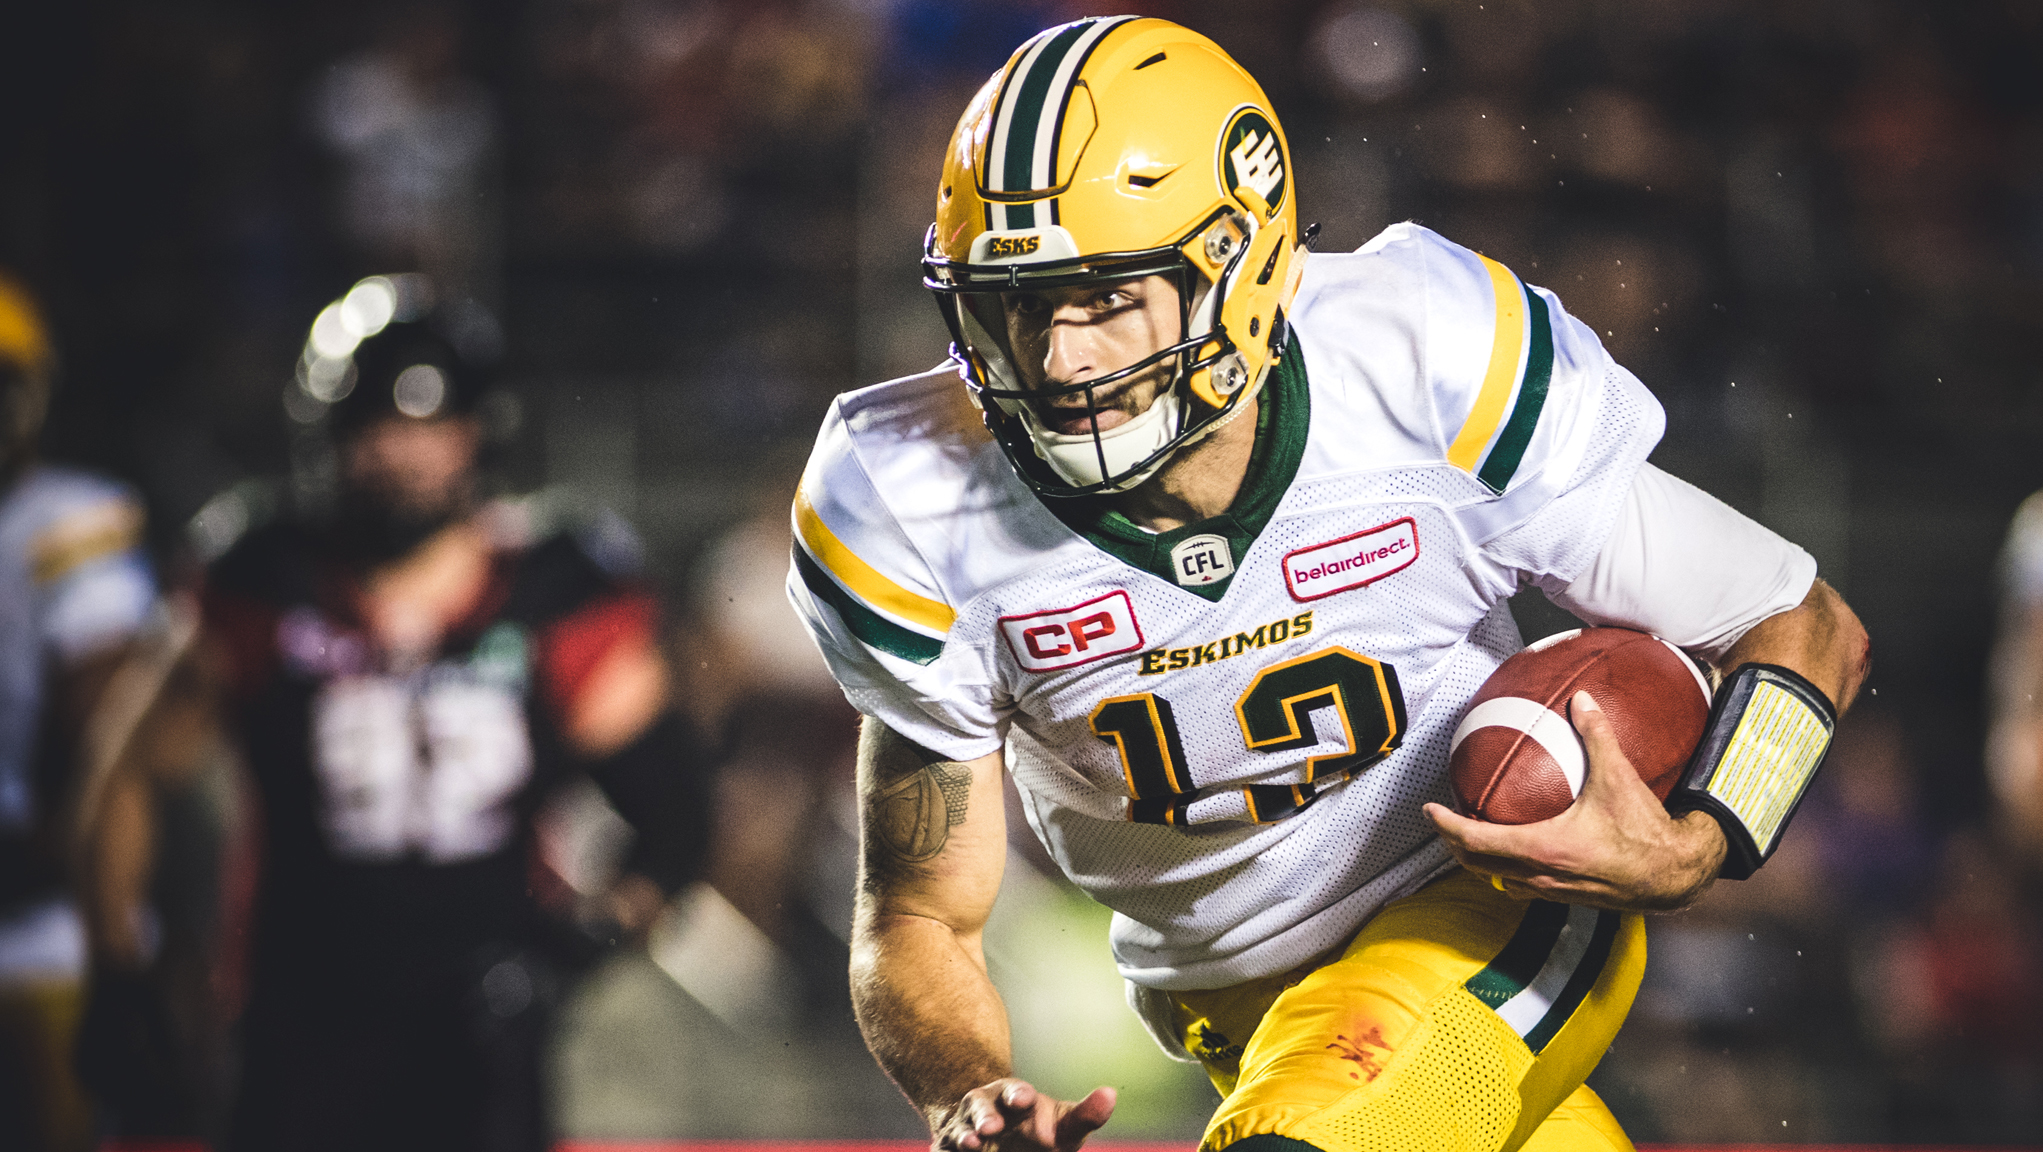 Fantasy Football Continues Into Playoffs With Tsn Cfl Fantasy Football Presented By Agf Cfl Ca